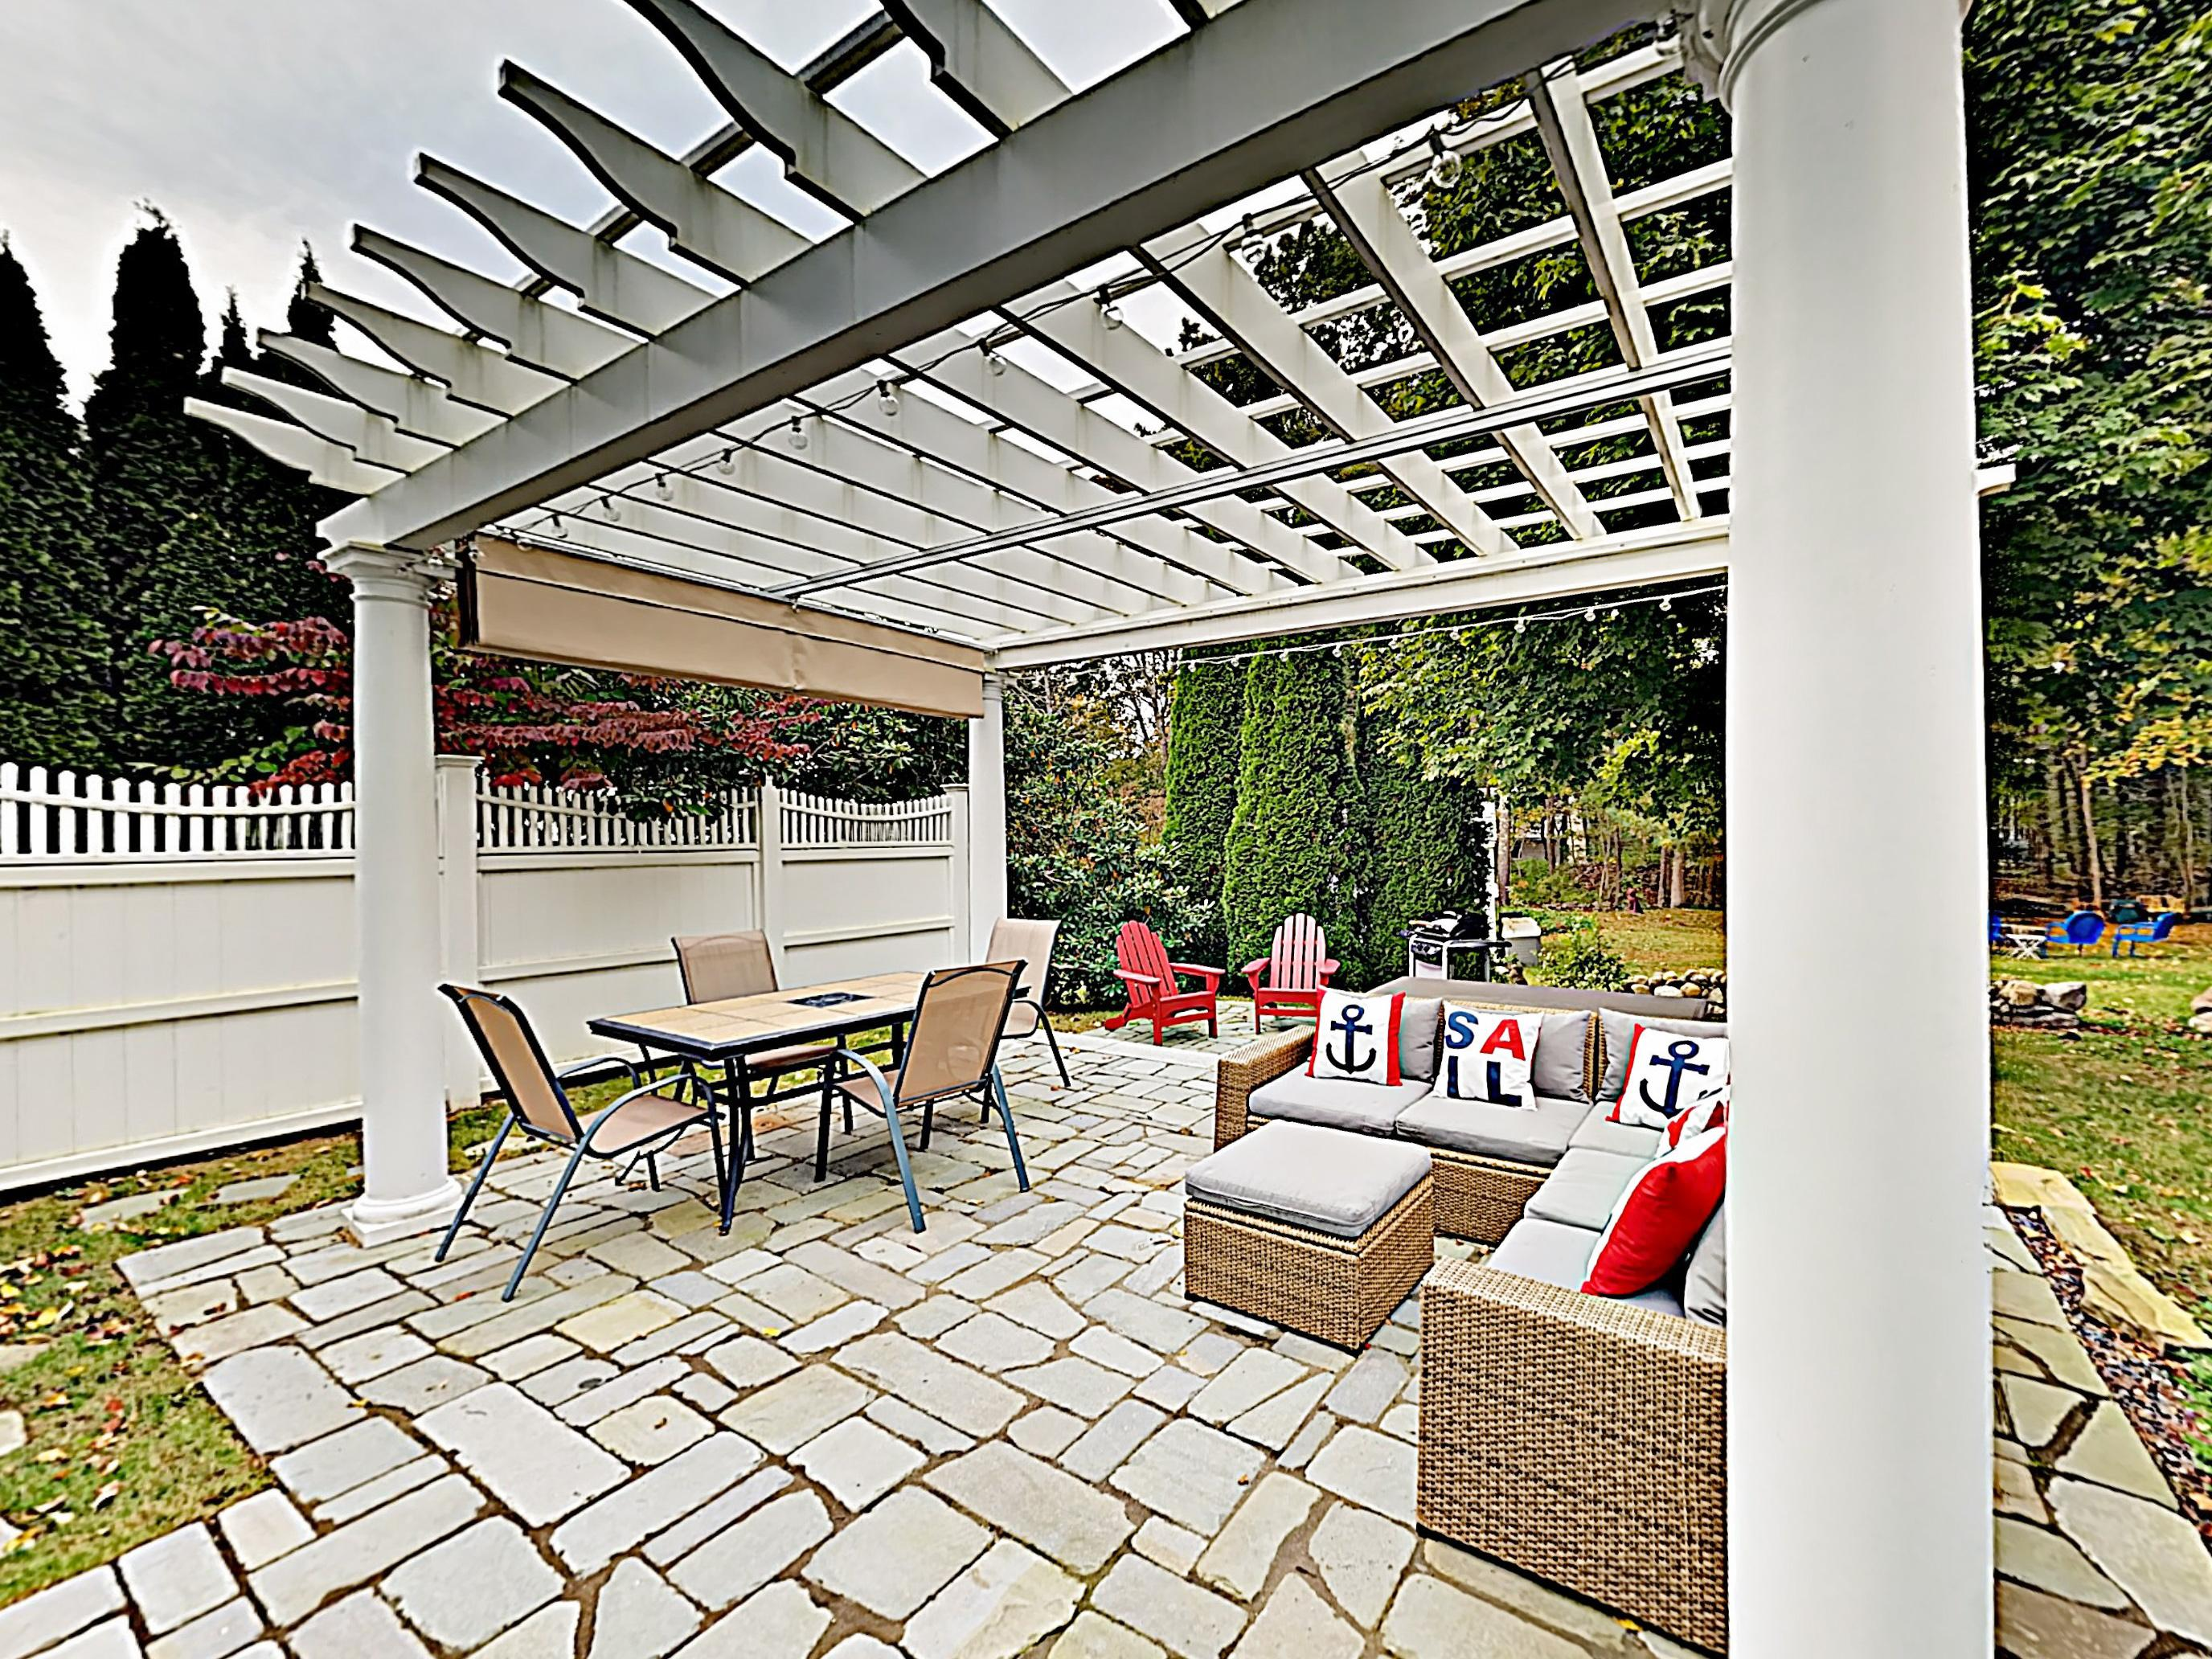 A lovely pergola on the stone patio sets the scene for relaxing in the great outdoors.